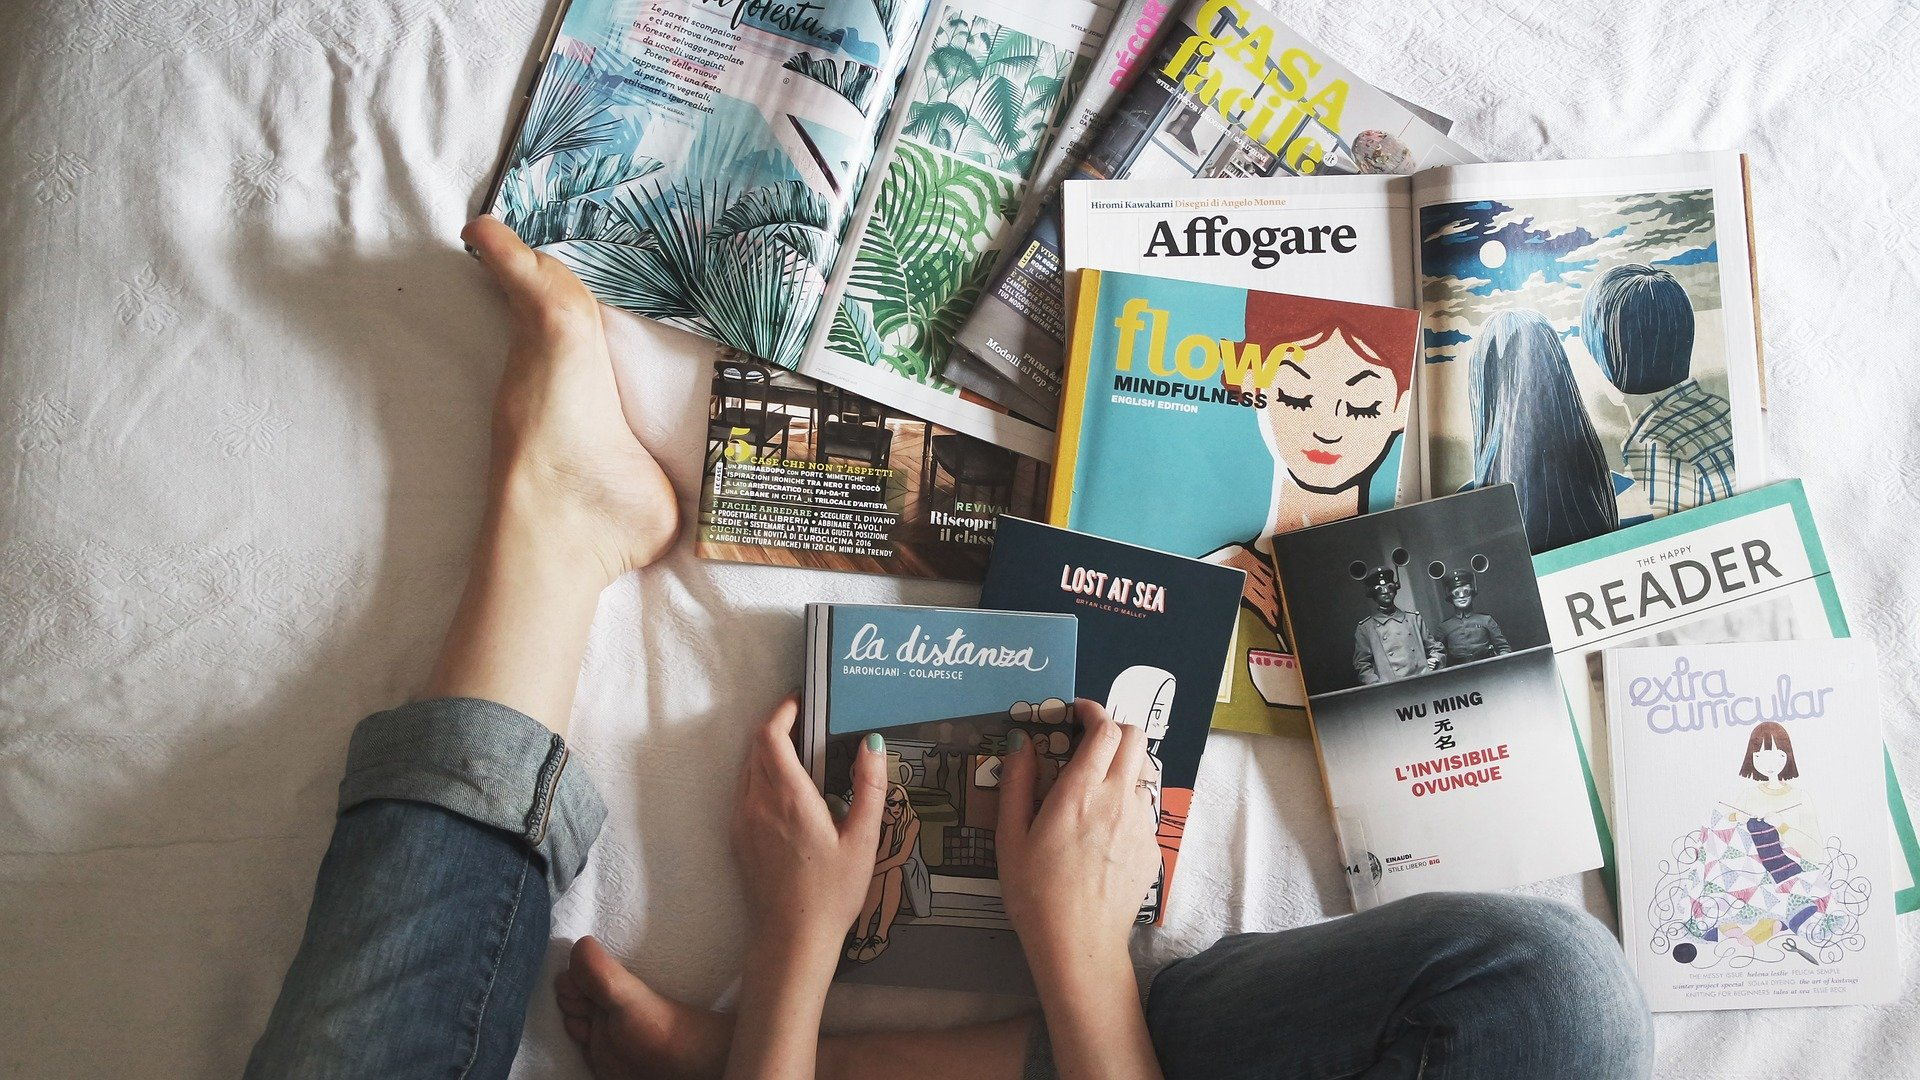 Person in bed with a pile of books and magazines at their feet.